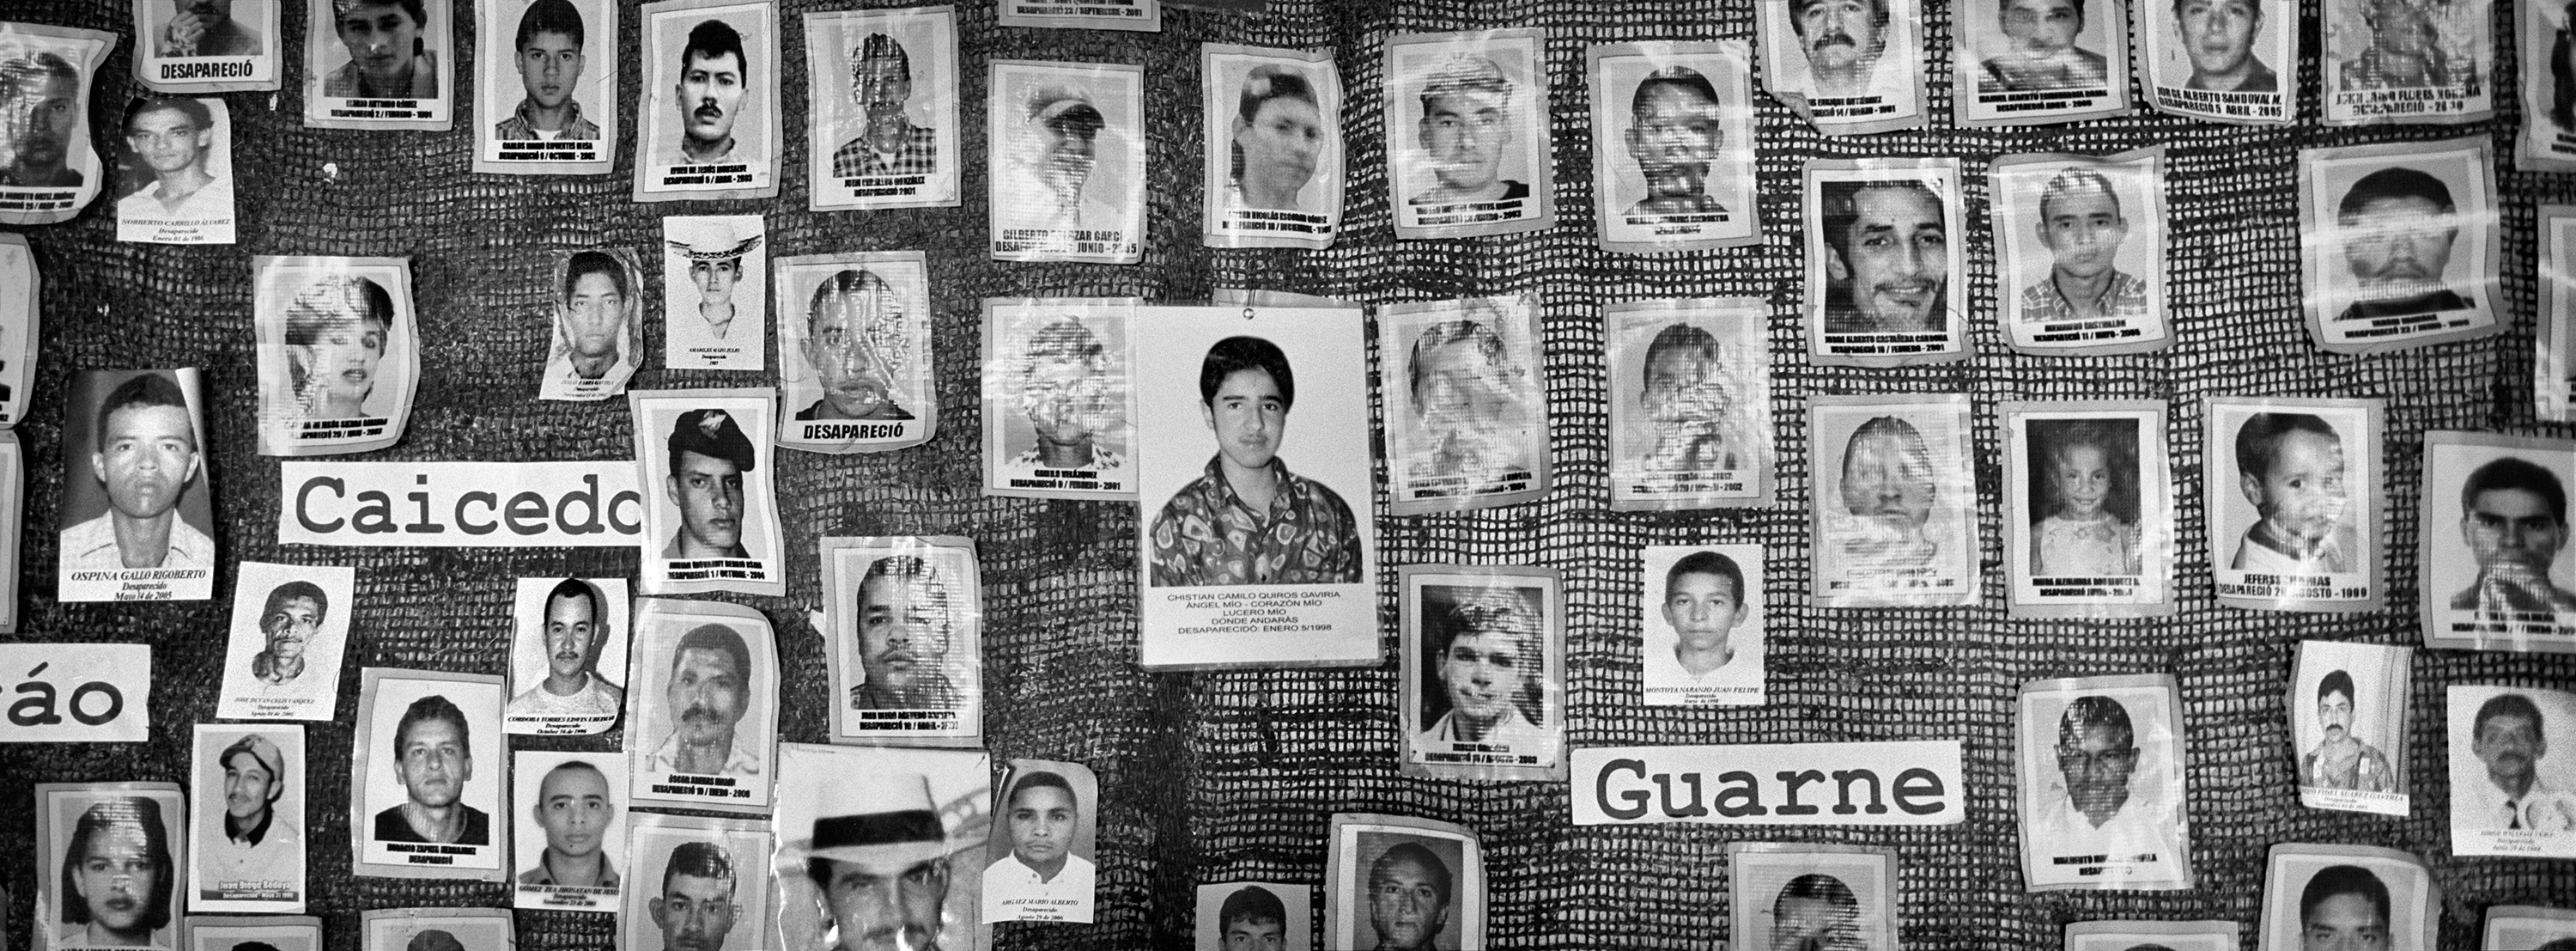 A mural with photographs of missing people from the war in Antioquia, Colombia, Feb. 2015. The association of the mothers of the Candelaria helps families find missing relatives. It was the first Association in Colombia which demanded answers about the fate of 96,000 missing people.